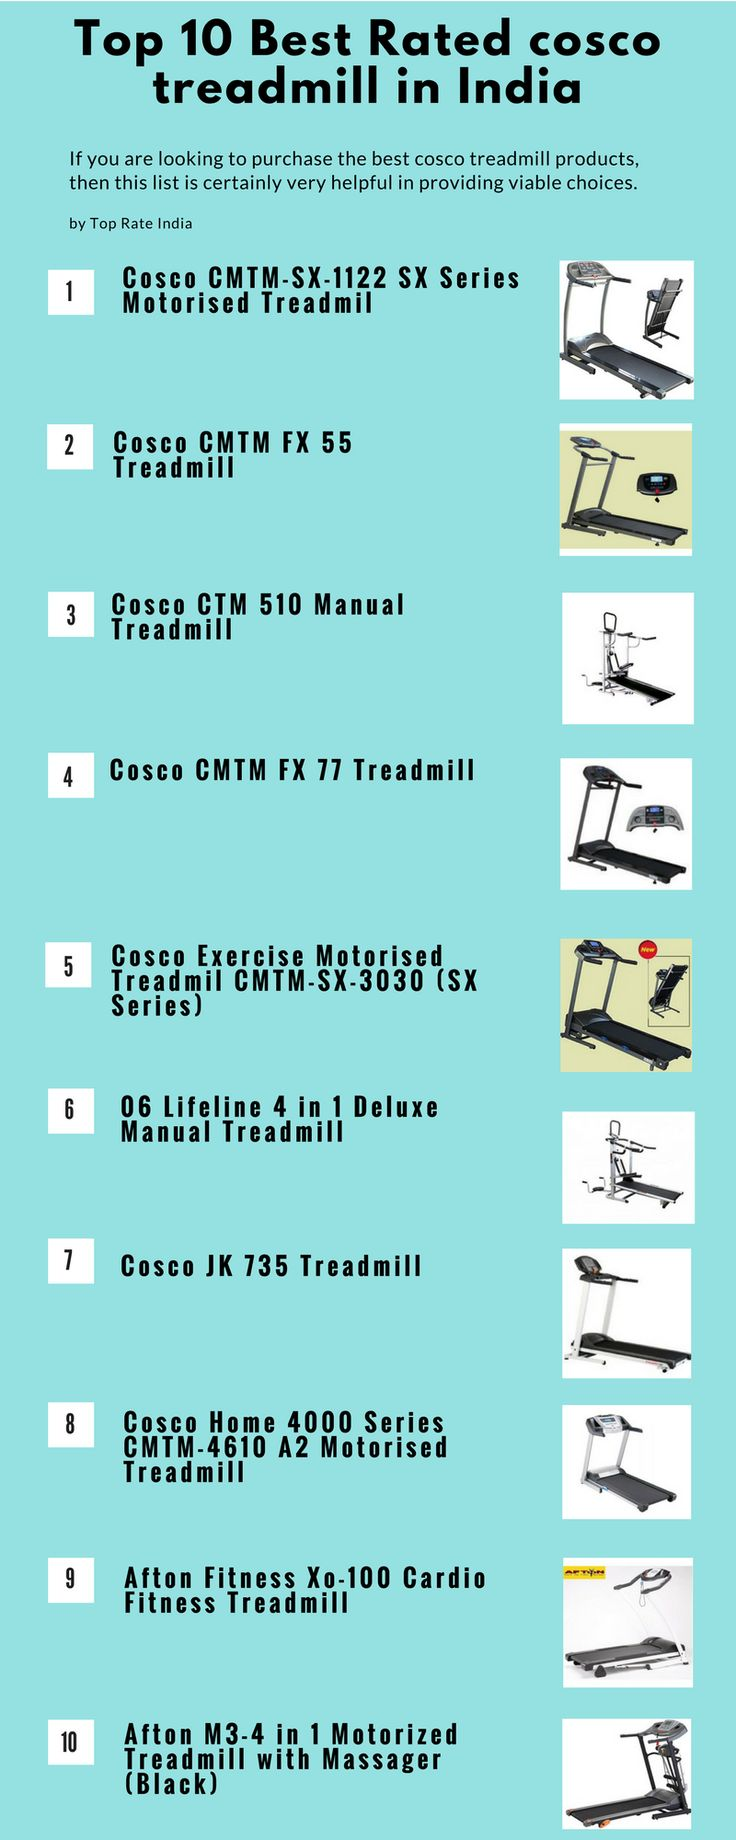 Buy best selling Cosco Treadmills online at low prices in India.  Check Cosco branded Treadmills products at top prices in India. For more Visit http://toprateindia.com/top-10-best-rated-cosco-treadmill-in-india/